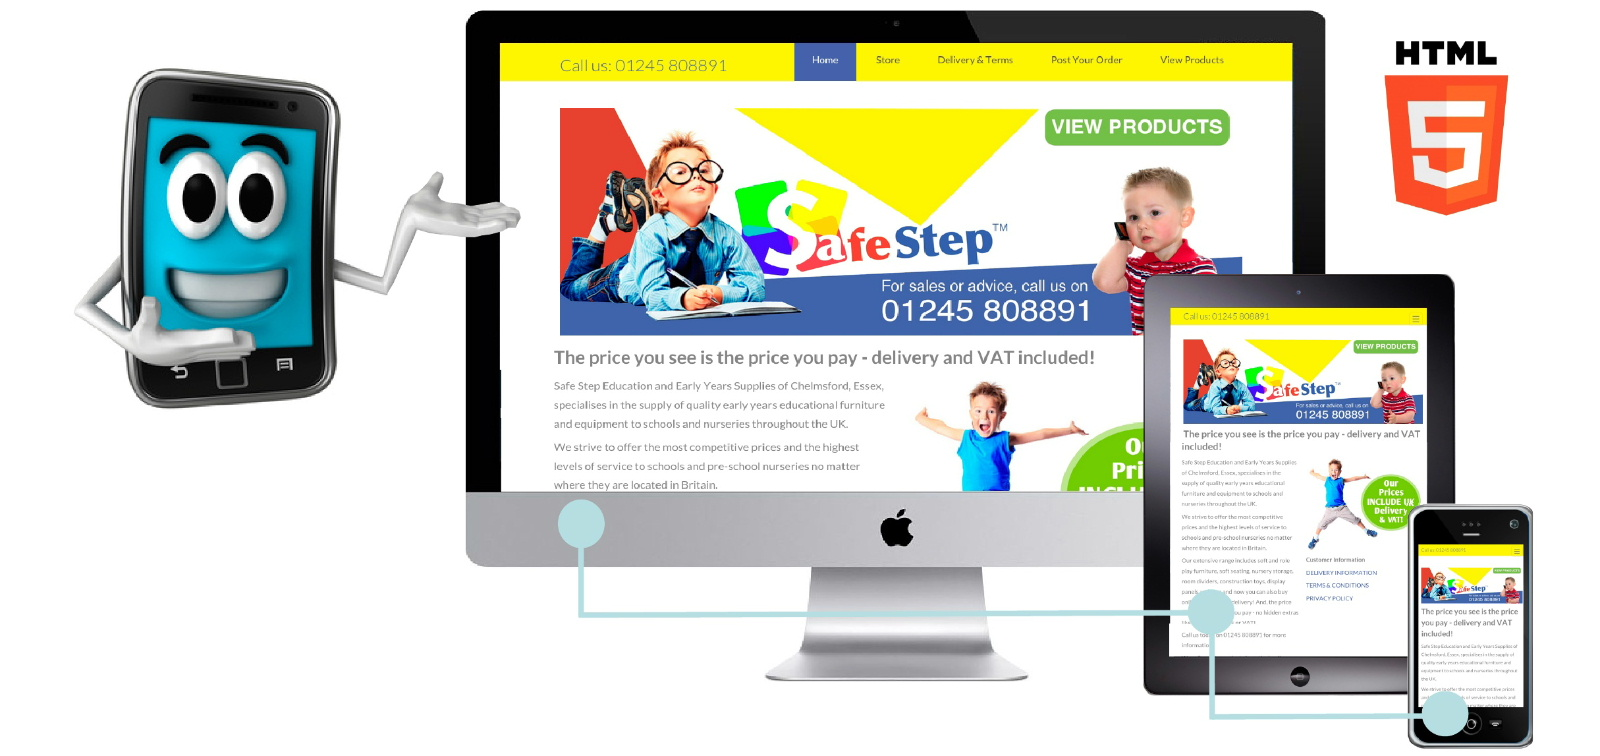 Safe Step Supplies of Chelmsford, Essex chose Great Value Websites to build their responsive ecommerce website